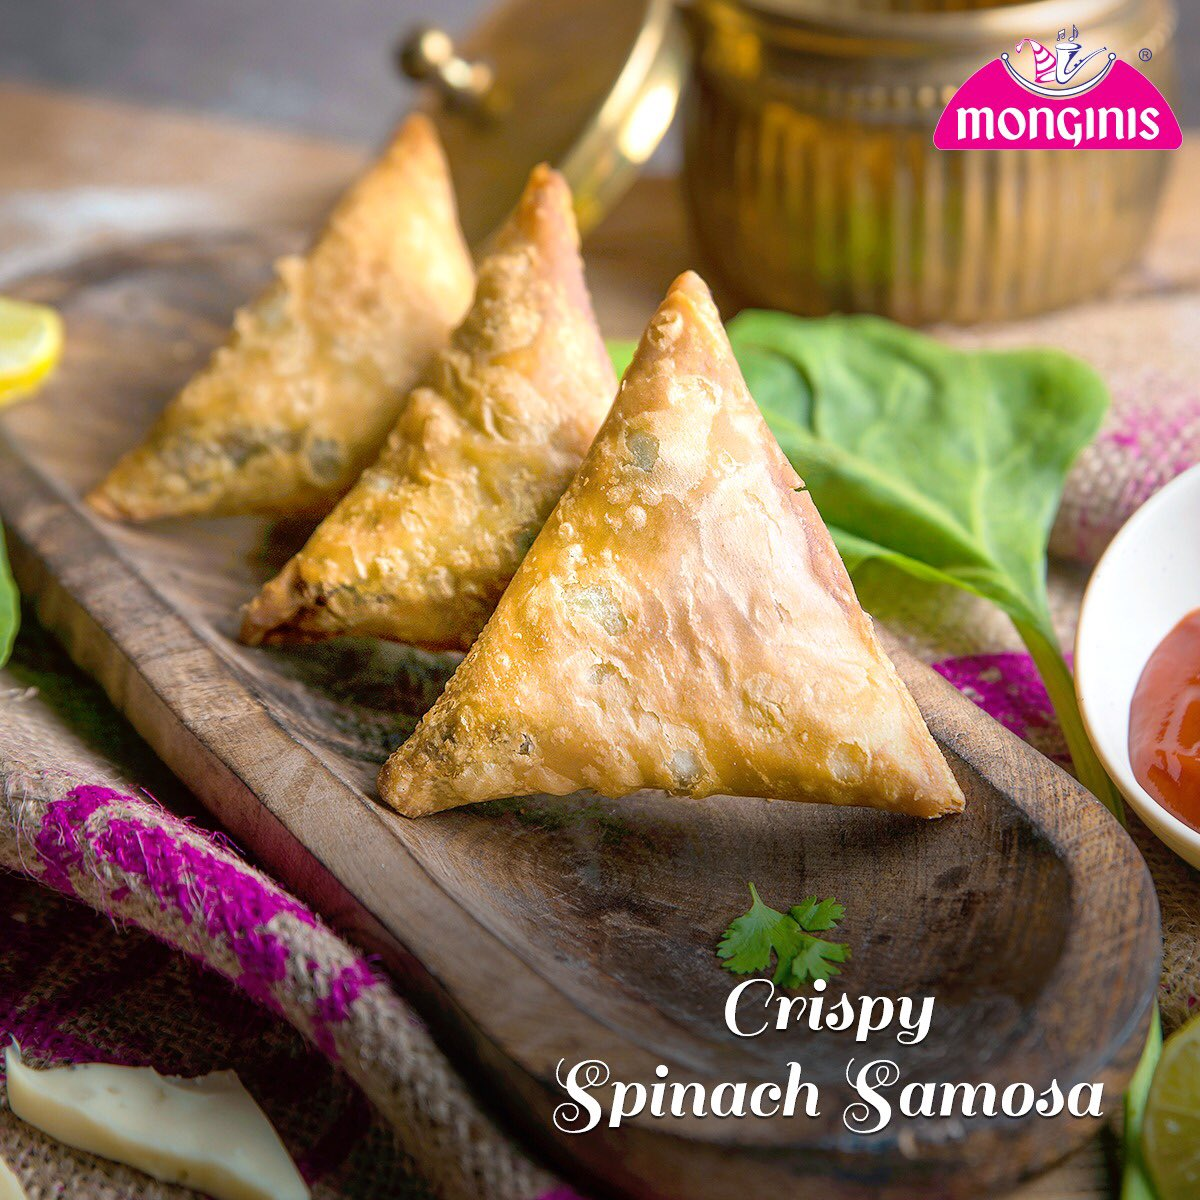 Samosas with a spinach twist! Give your taste buds something new this week at a Monginis near you.  Visit your nearest #Monginis  store today:  https://monginis.net   #treat  #greet  #instacake  #cake  #bakery  #Chocolate  #instafood  #yummy  #cakes  #foodie  #delicious  #Purevegcakes